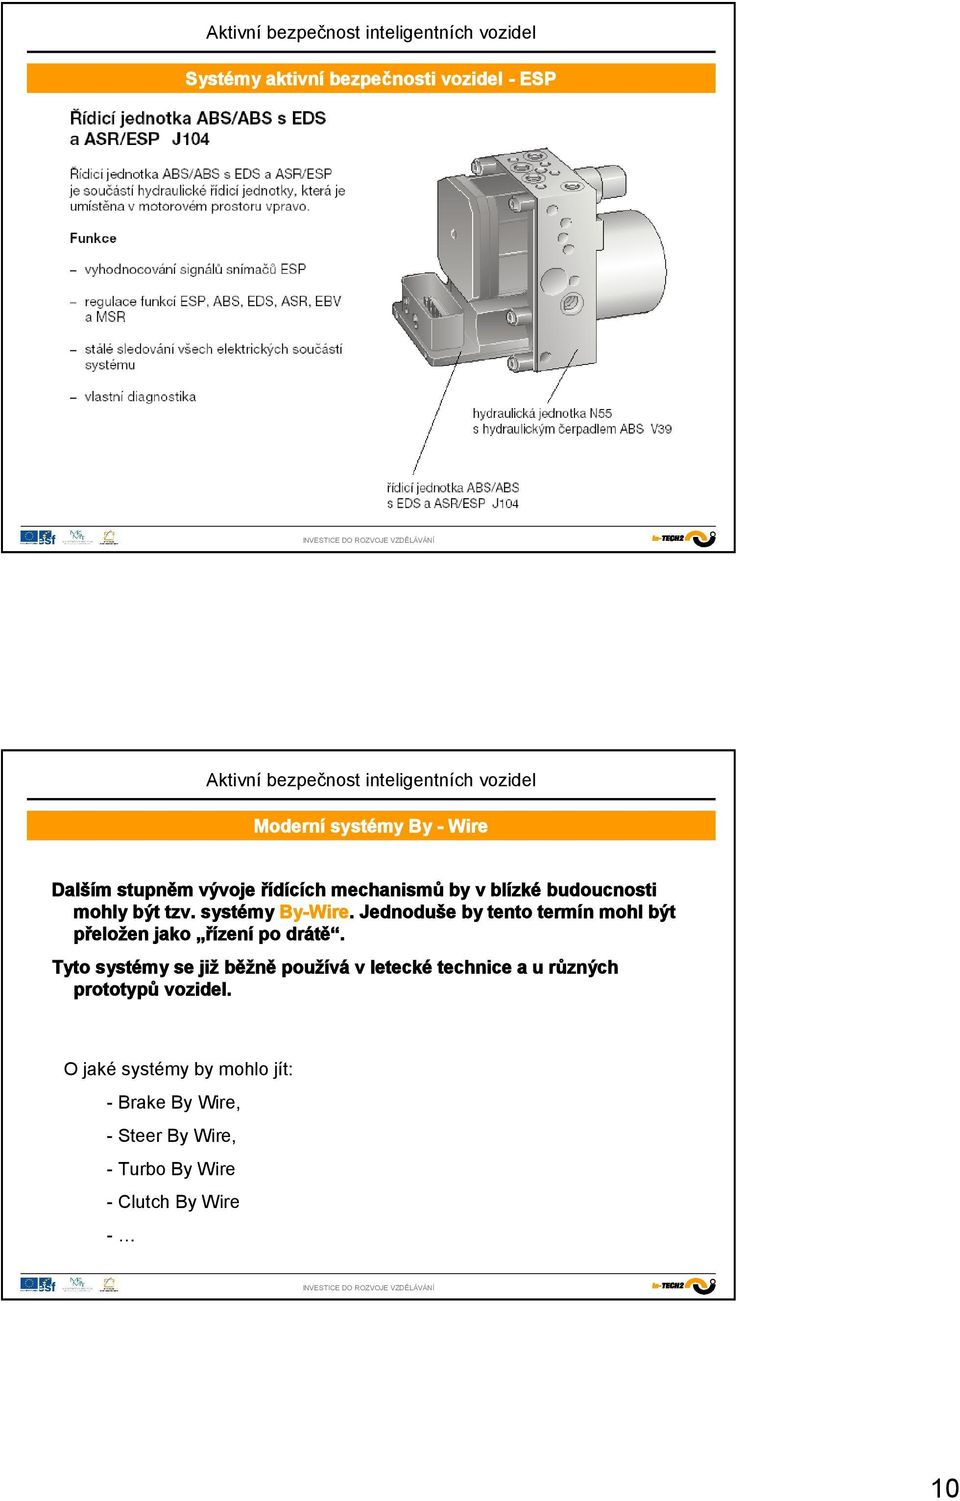 steer by wire technology pdf